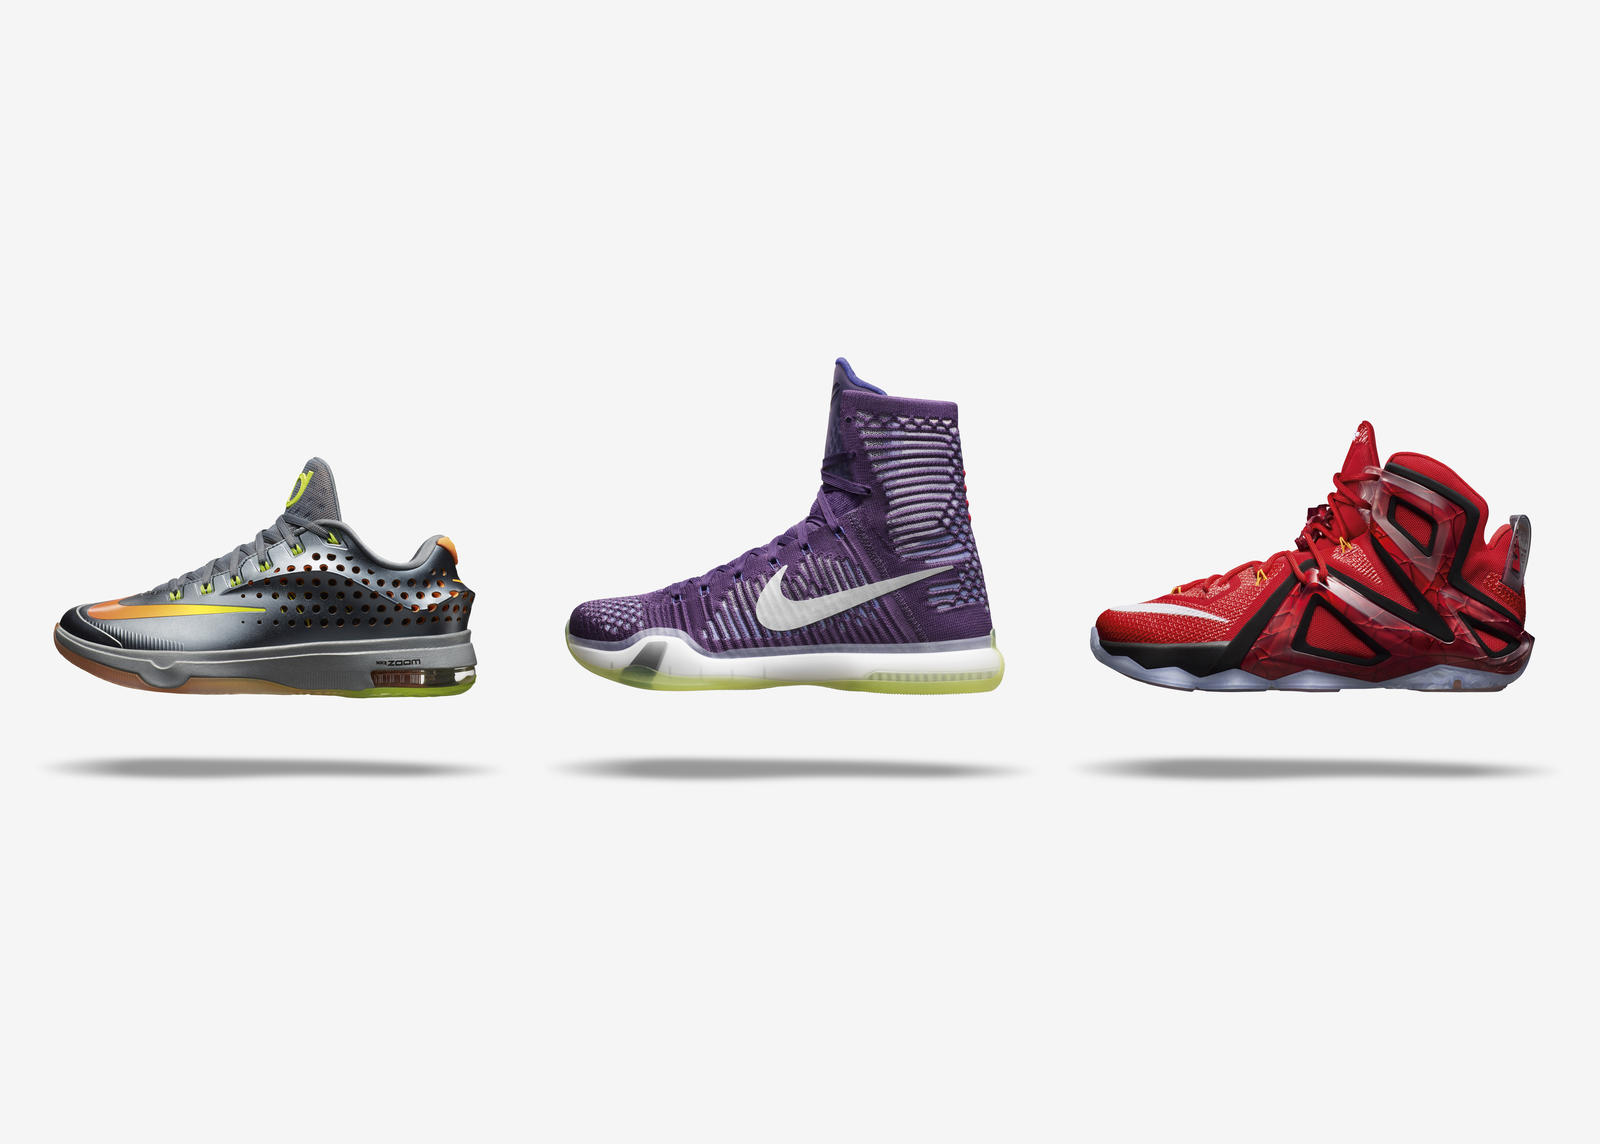 half off 2a3f1 21ad5 Su15 Elite 3UP April HF1. Nike Basketball ...